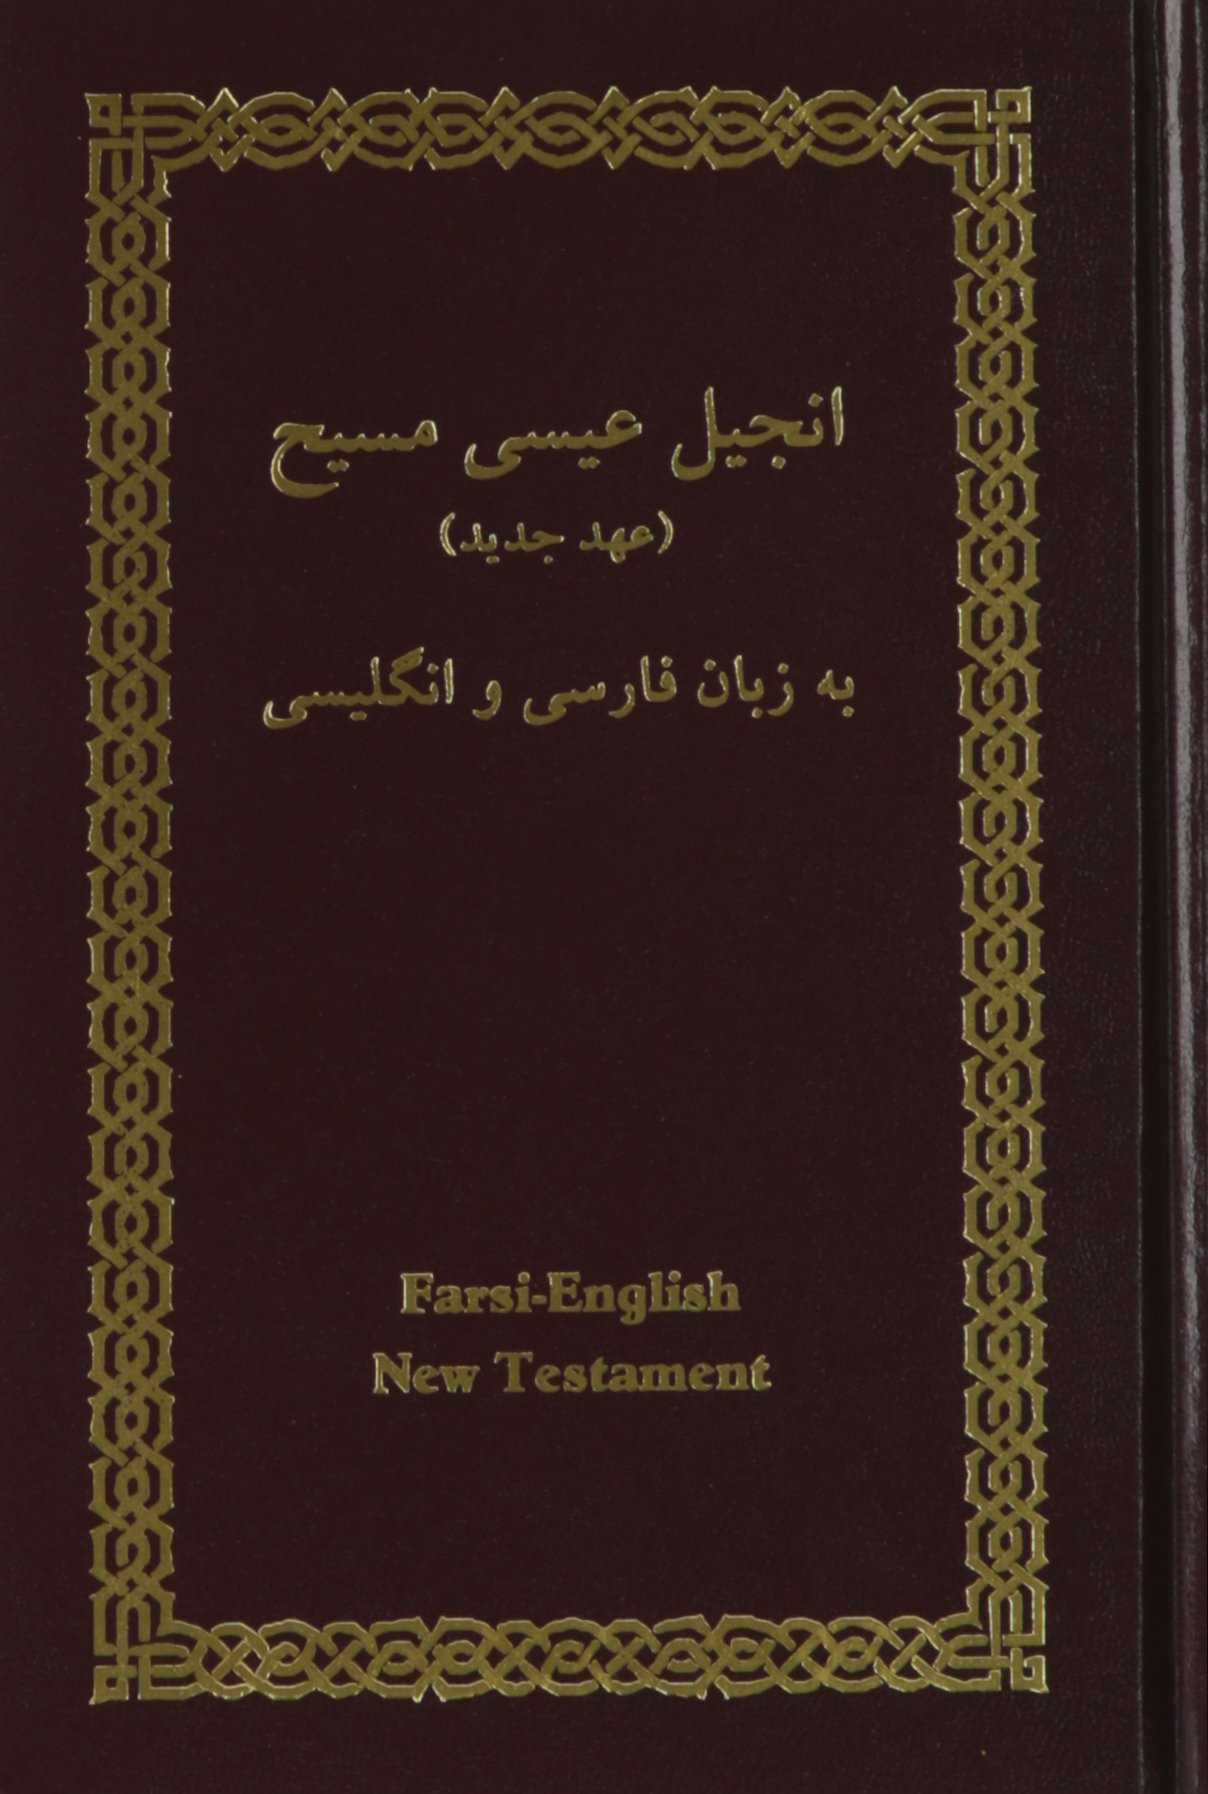 The farsi contemporary bible farsi english new testament amazon the farsi contemporary bible farsi english new testament amazon books stopboris Images